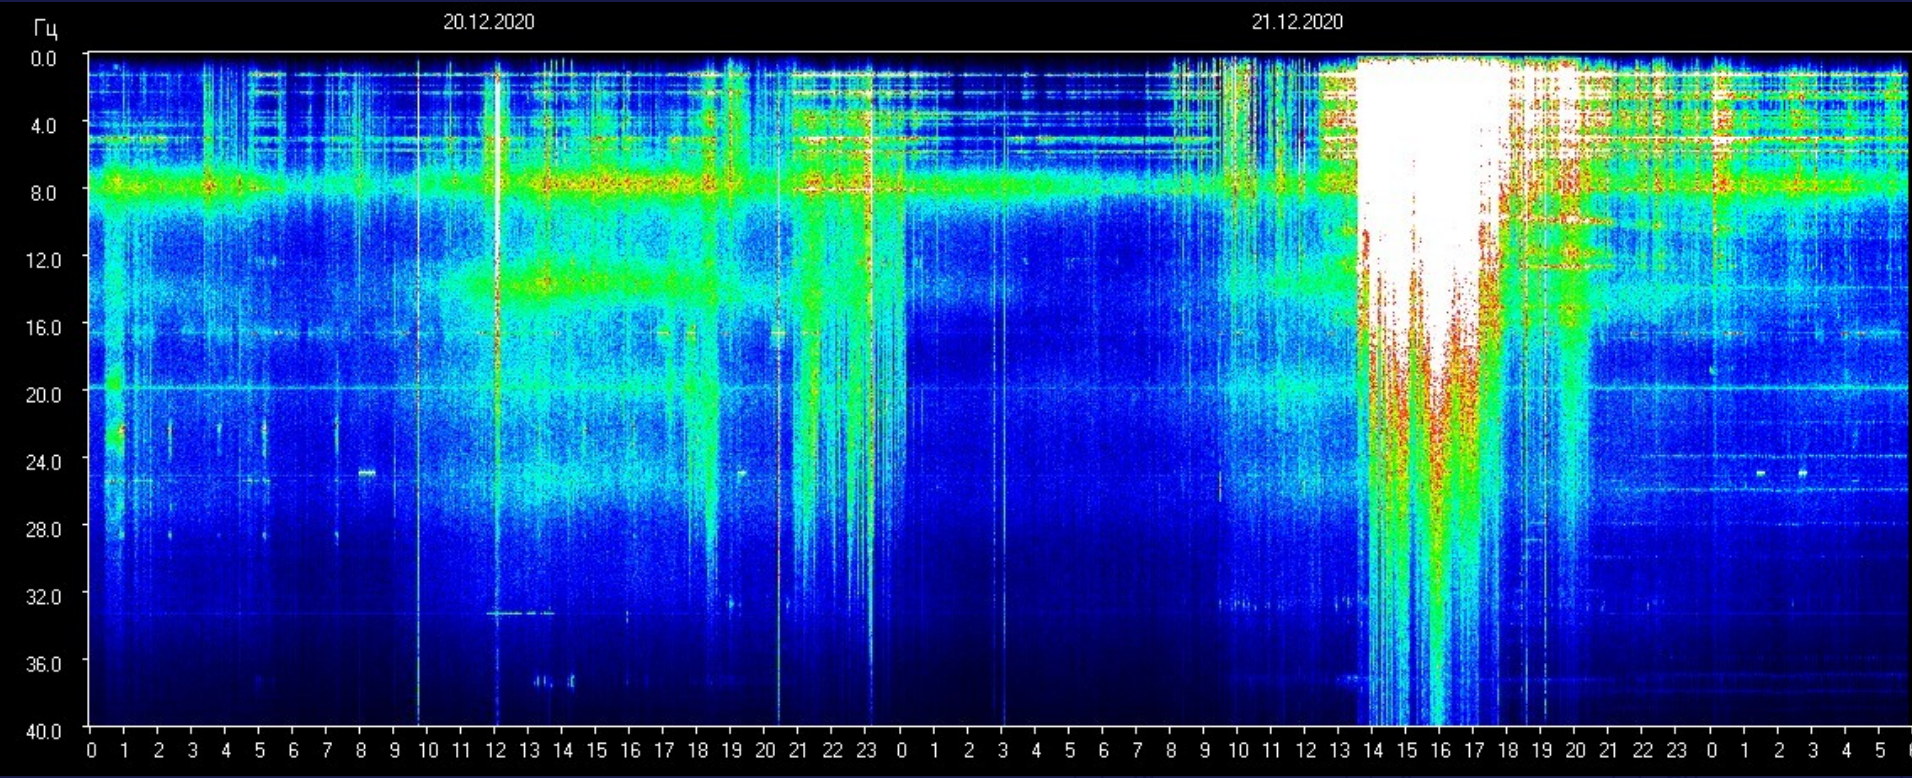 Schumann resonance on the 21st December 2020 with global meditations